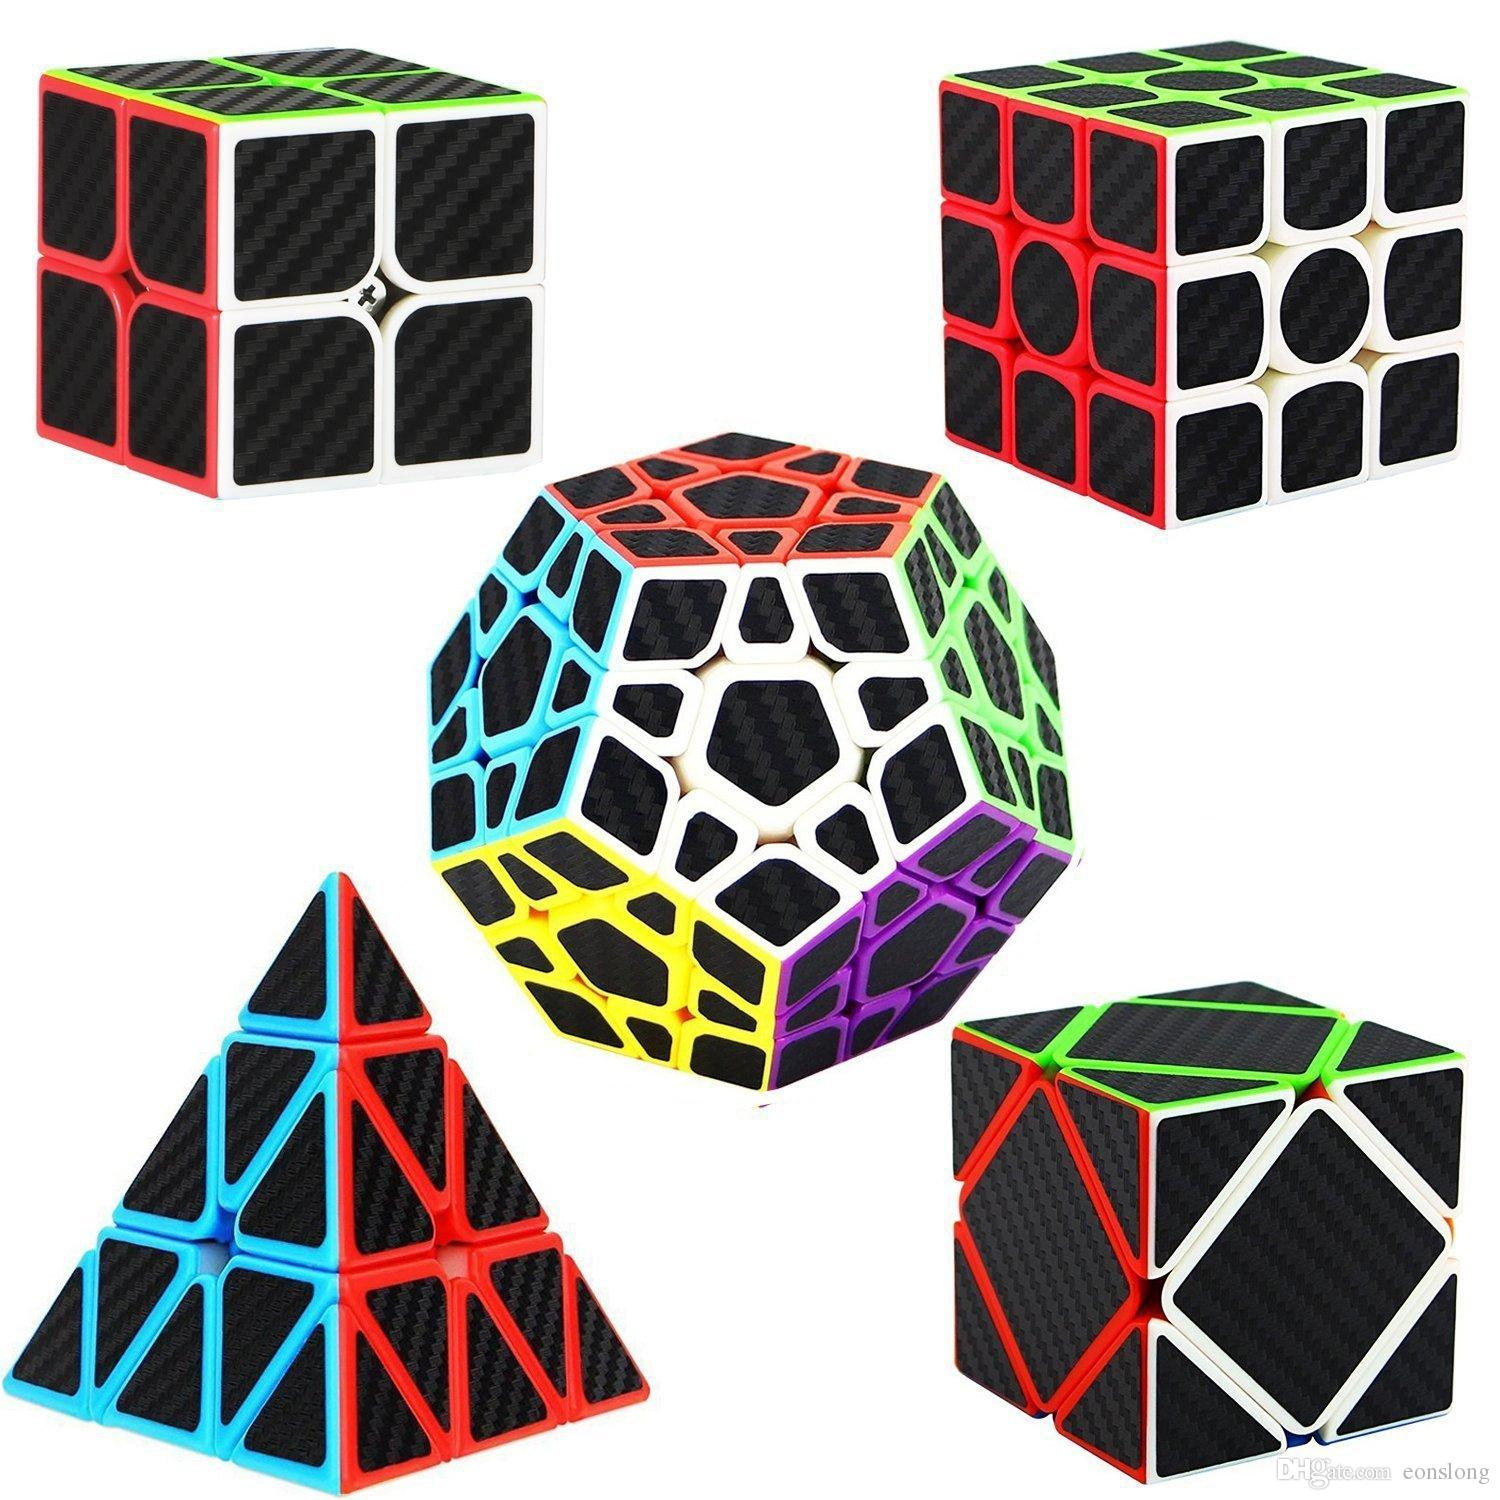 Speed Cube 2x2 3x3 4x4 Pyraminx Megaminx Skewb Carbon Fiber Sticker Magic Cube Puzzle Toy for Kids Intelligence Development